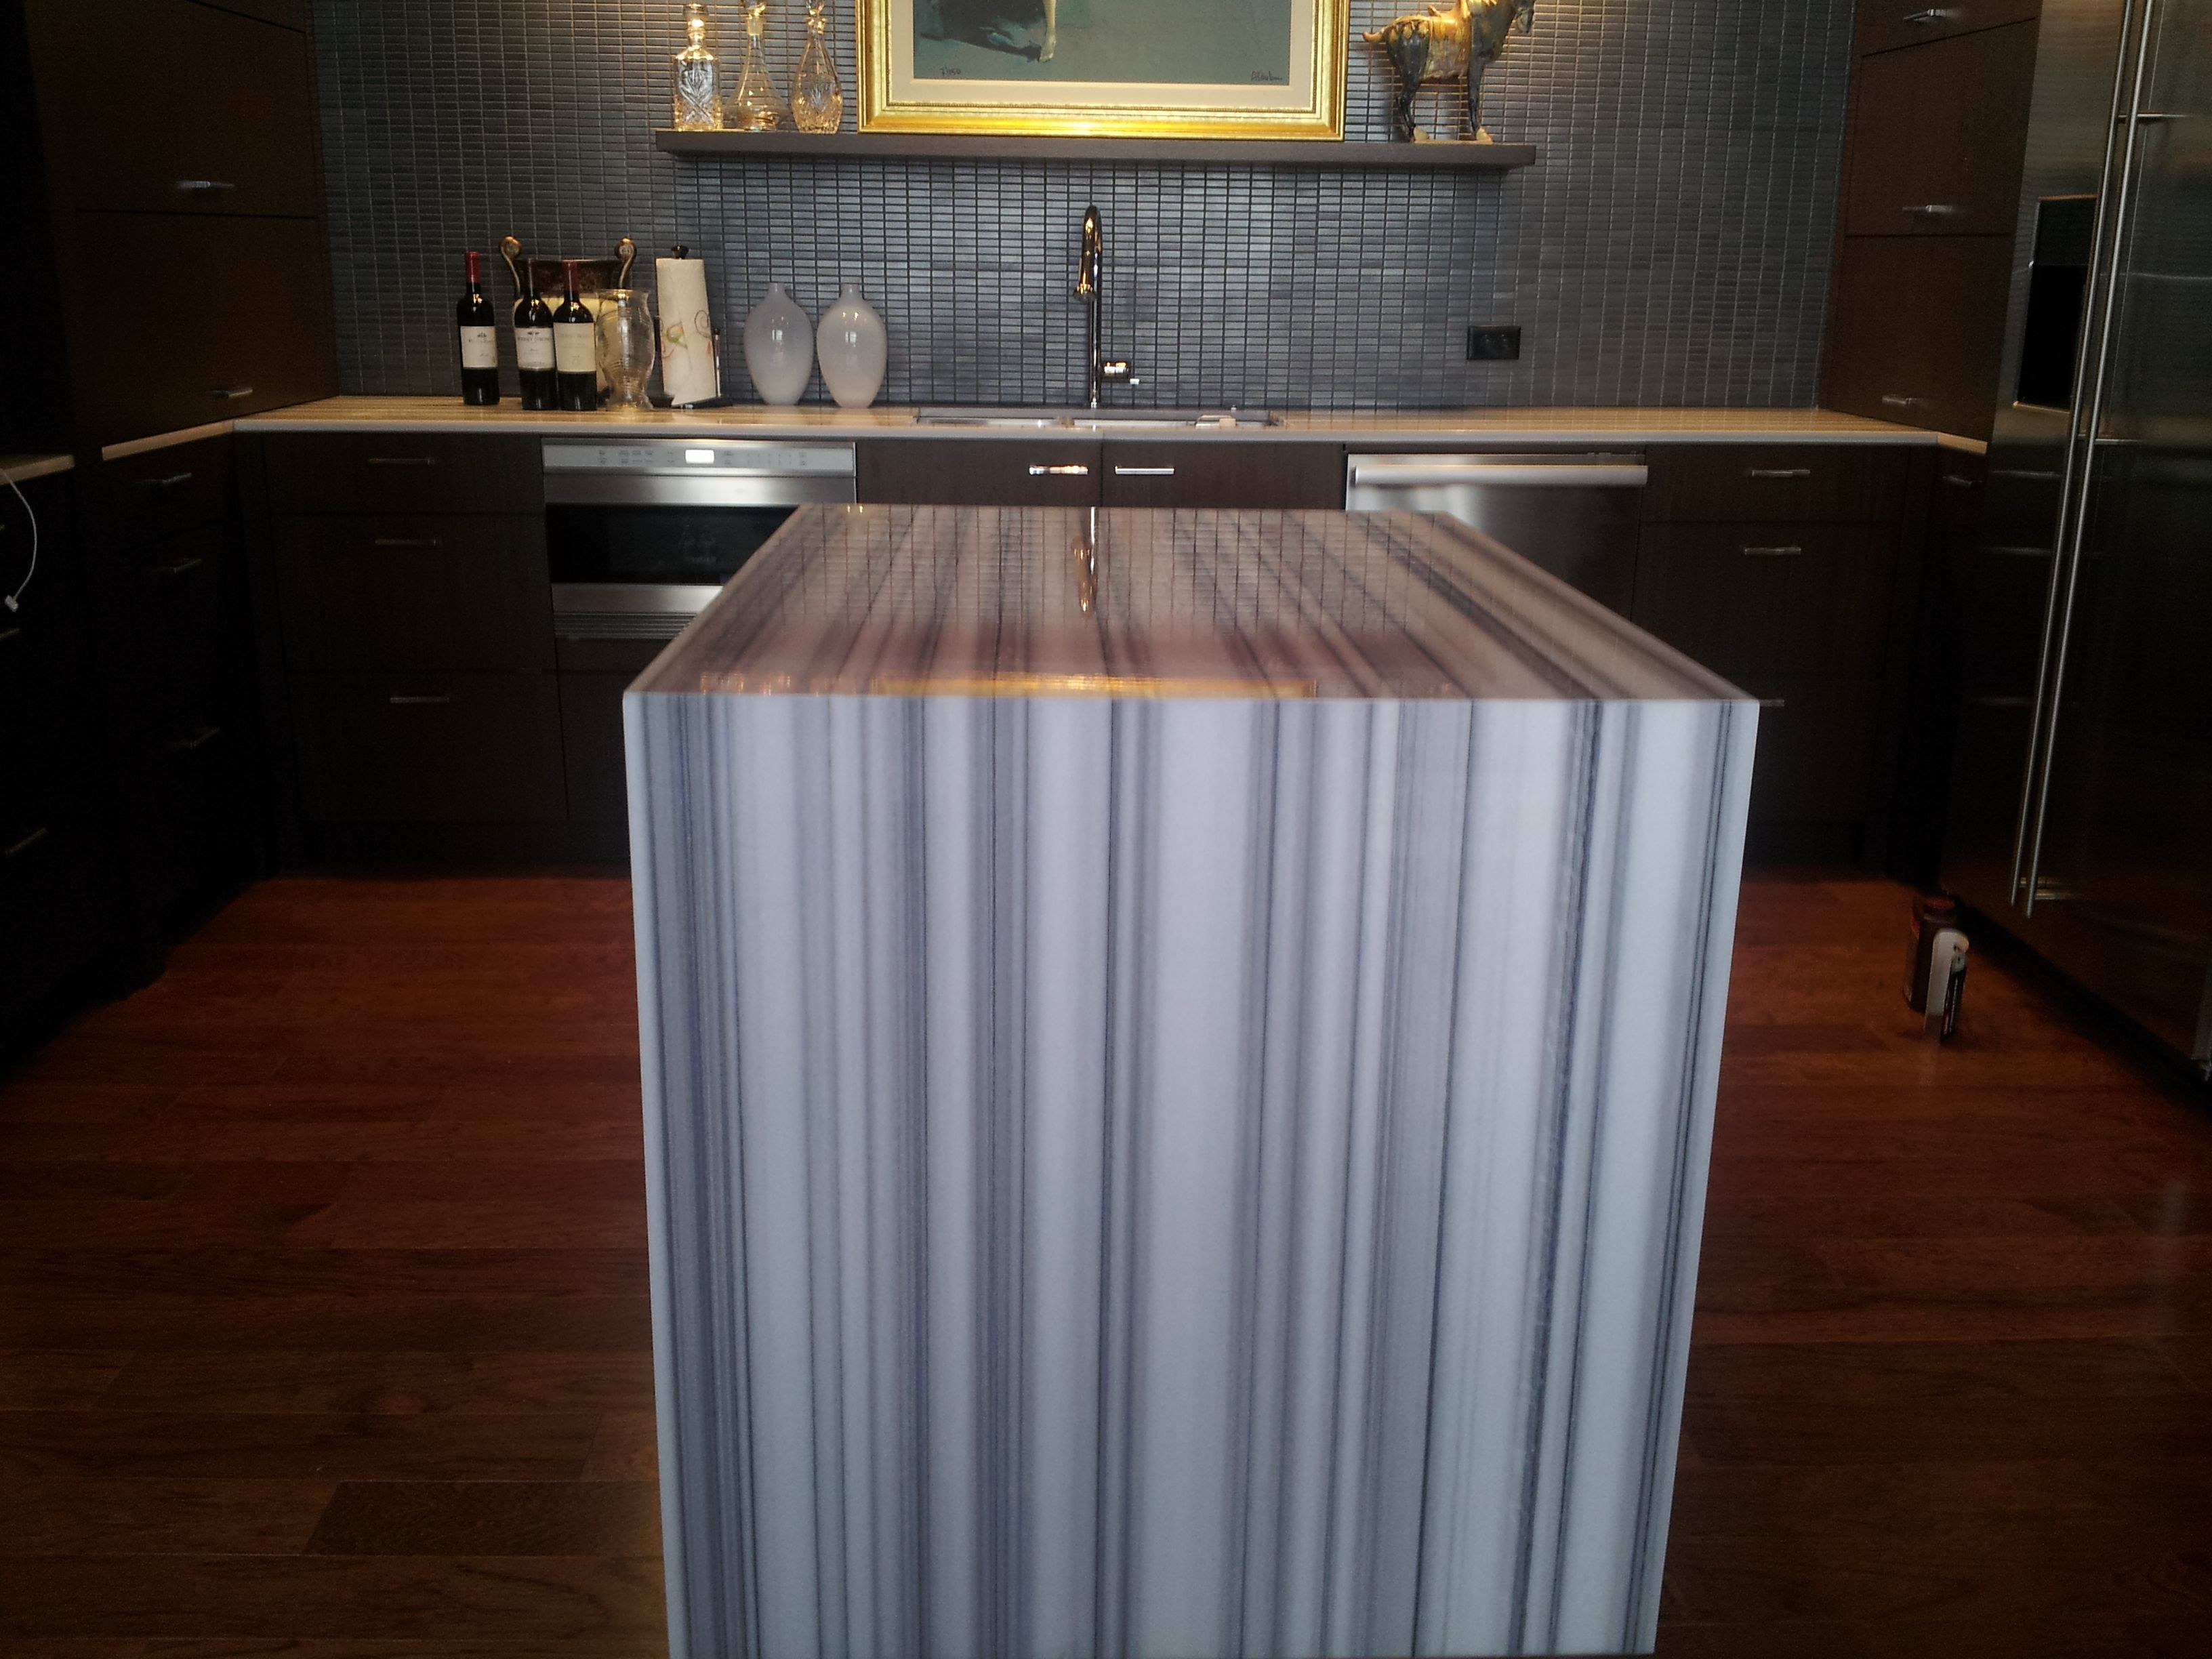 Equator Marble With Mitered Edge And Waterfall   Miami Circle Marble In  Atlanta · Granite Countertop ...